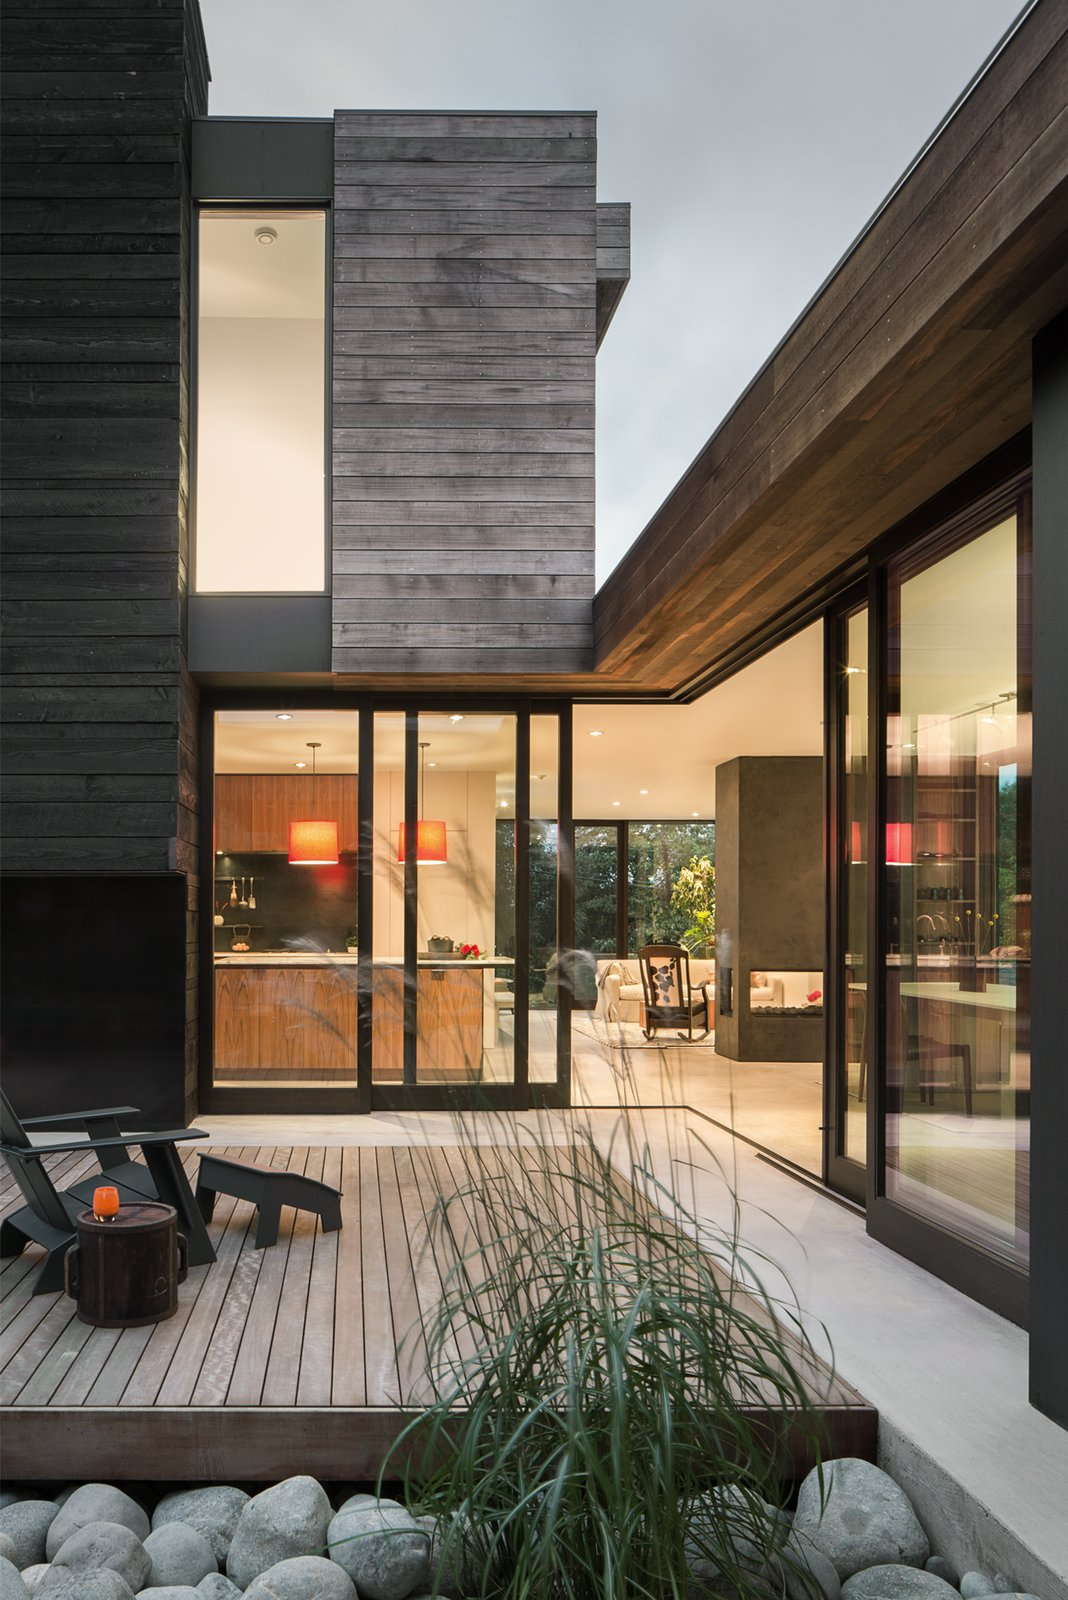 Outdoor, Small Patio, Porch, Deck, and Wood Patio, Porch, Deck Helen Street by mw|works  Helen Street by mw|works